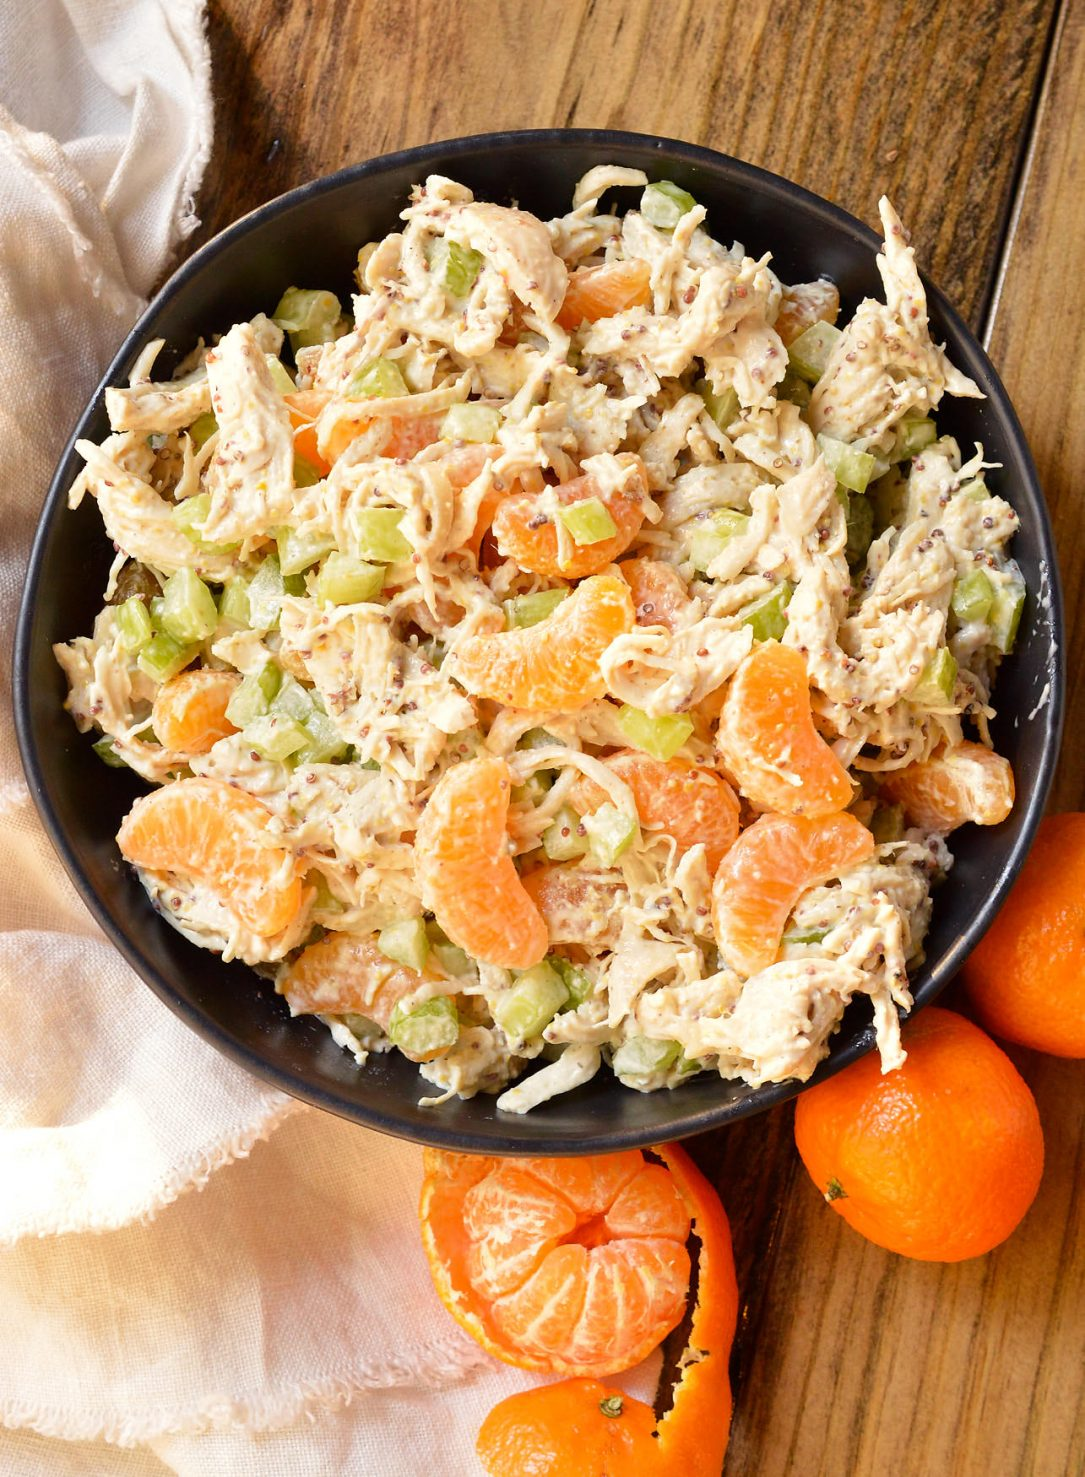 Take a break from boring old chicken salad and make thisMandarin Orange Chicken Salad Recipe. The tangy dijon mustard and sweet mandarin oranges take this chicken salad to the next level! With just 5 ingredients this makes a great nutritious lunch or dinner and can be made into a Whole30 compliant recipe. #whole30recipes #paleorecipes #chickensaladrecipe #mandarinchicken